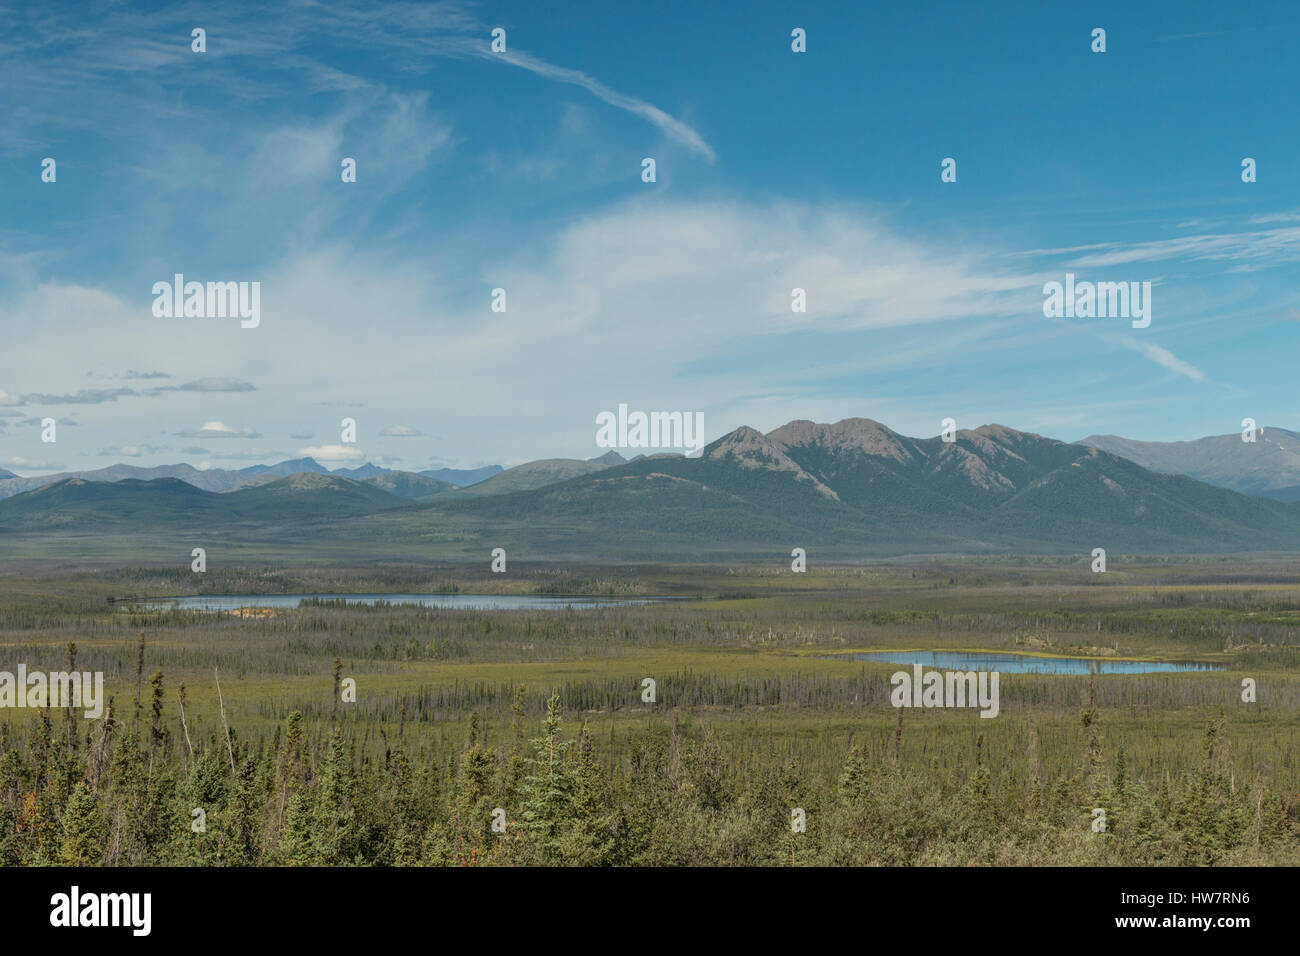 Boreal forest and the Brooks Range from the Dalton Highway, Alaska. - Stock Image